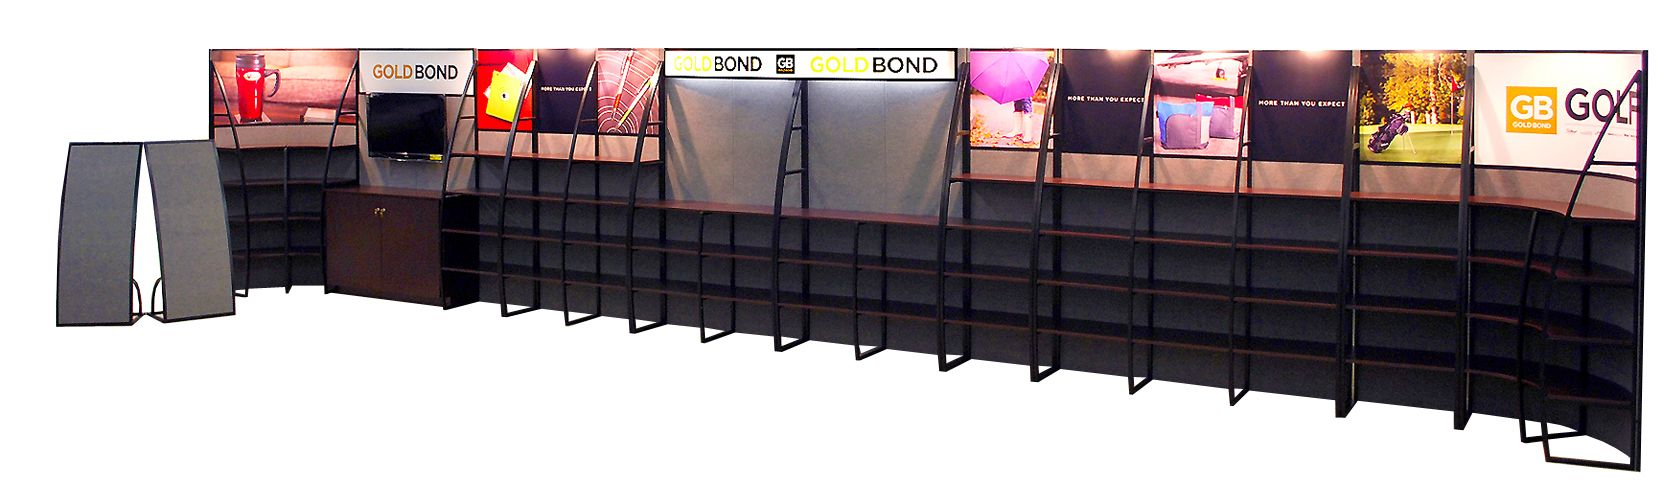 Custom Shelving Trade Show Display by Godfrey Group